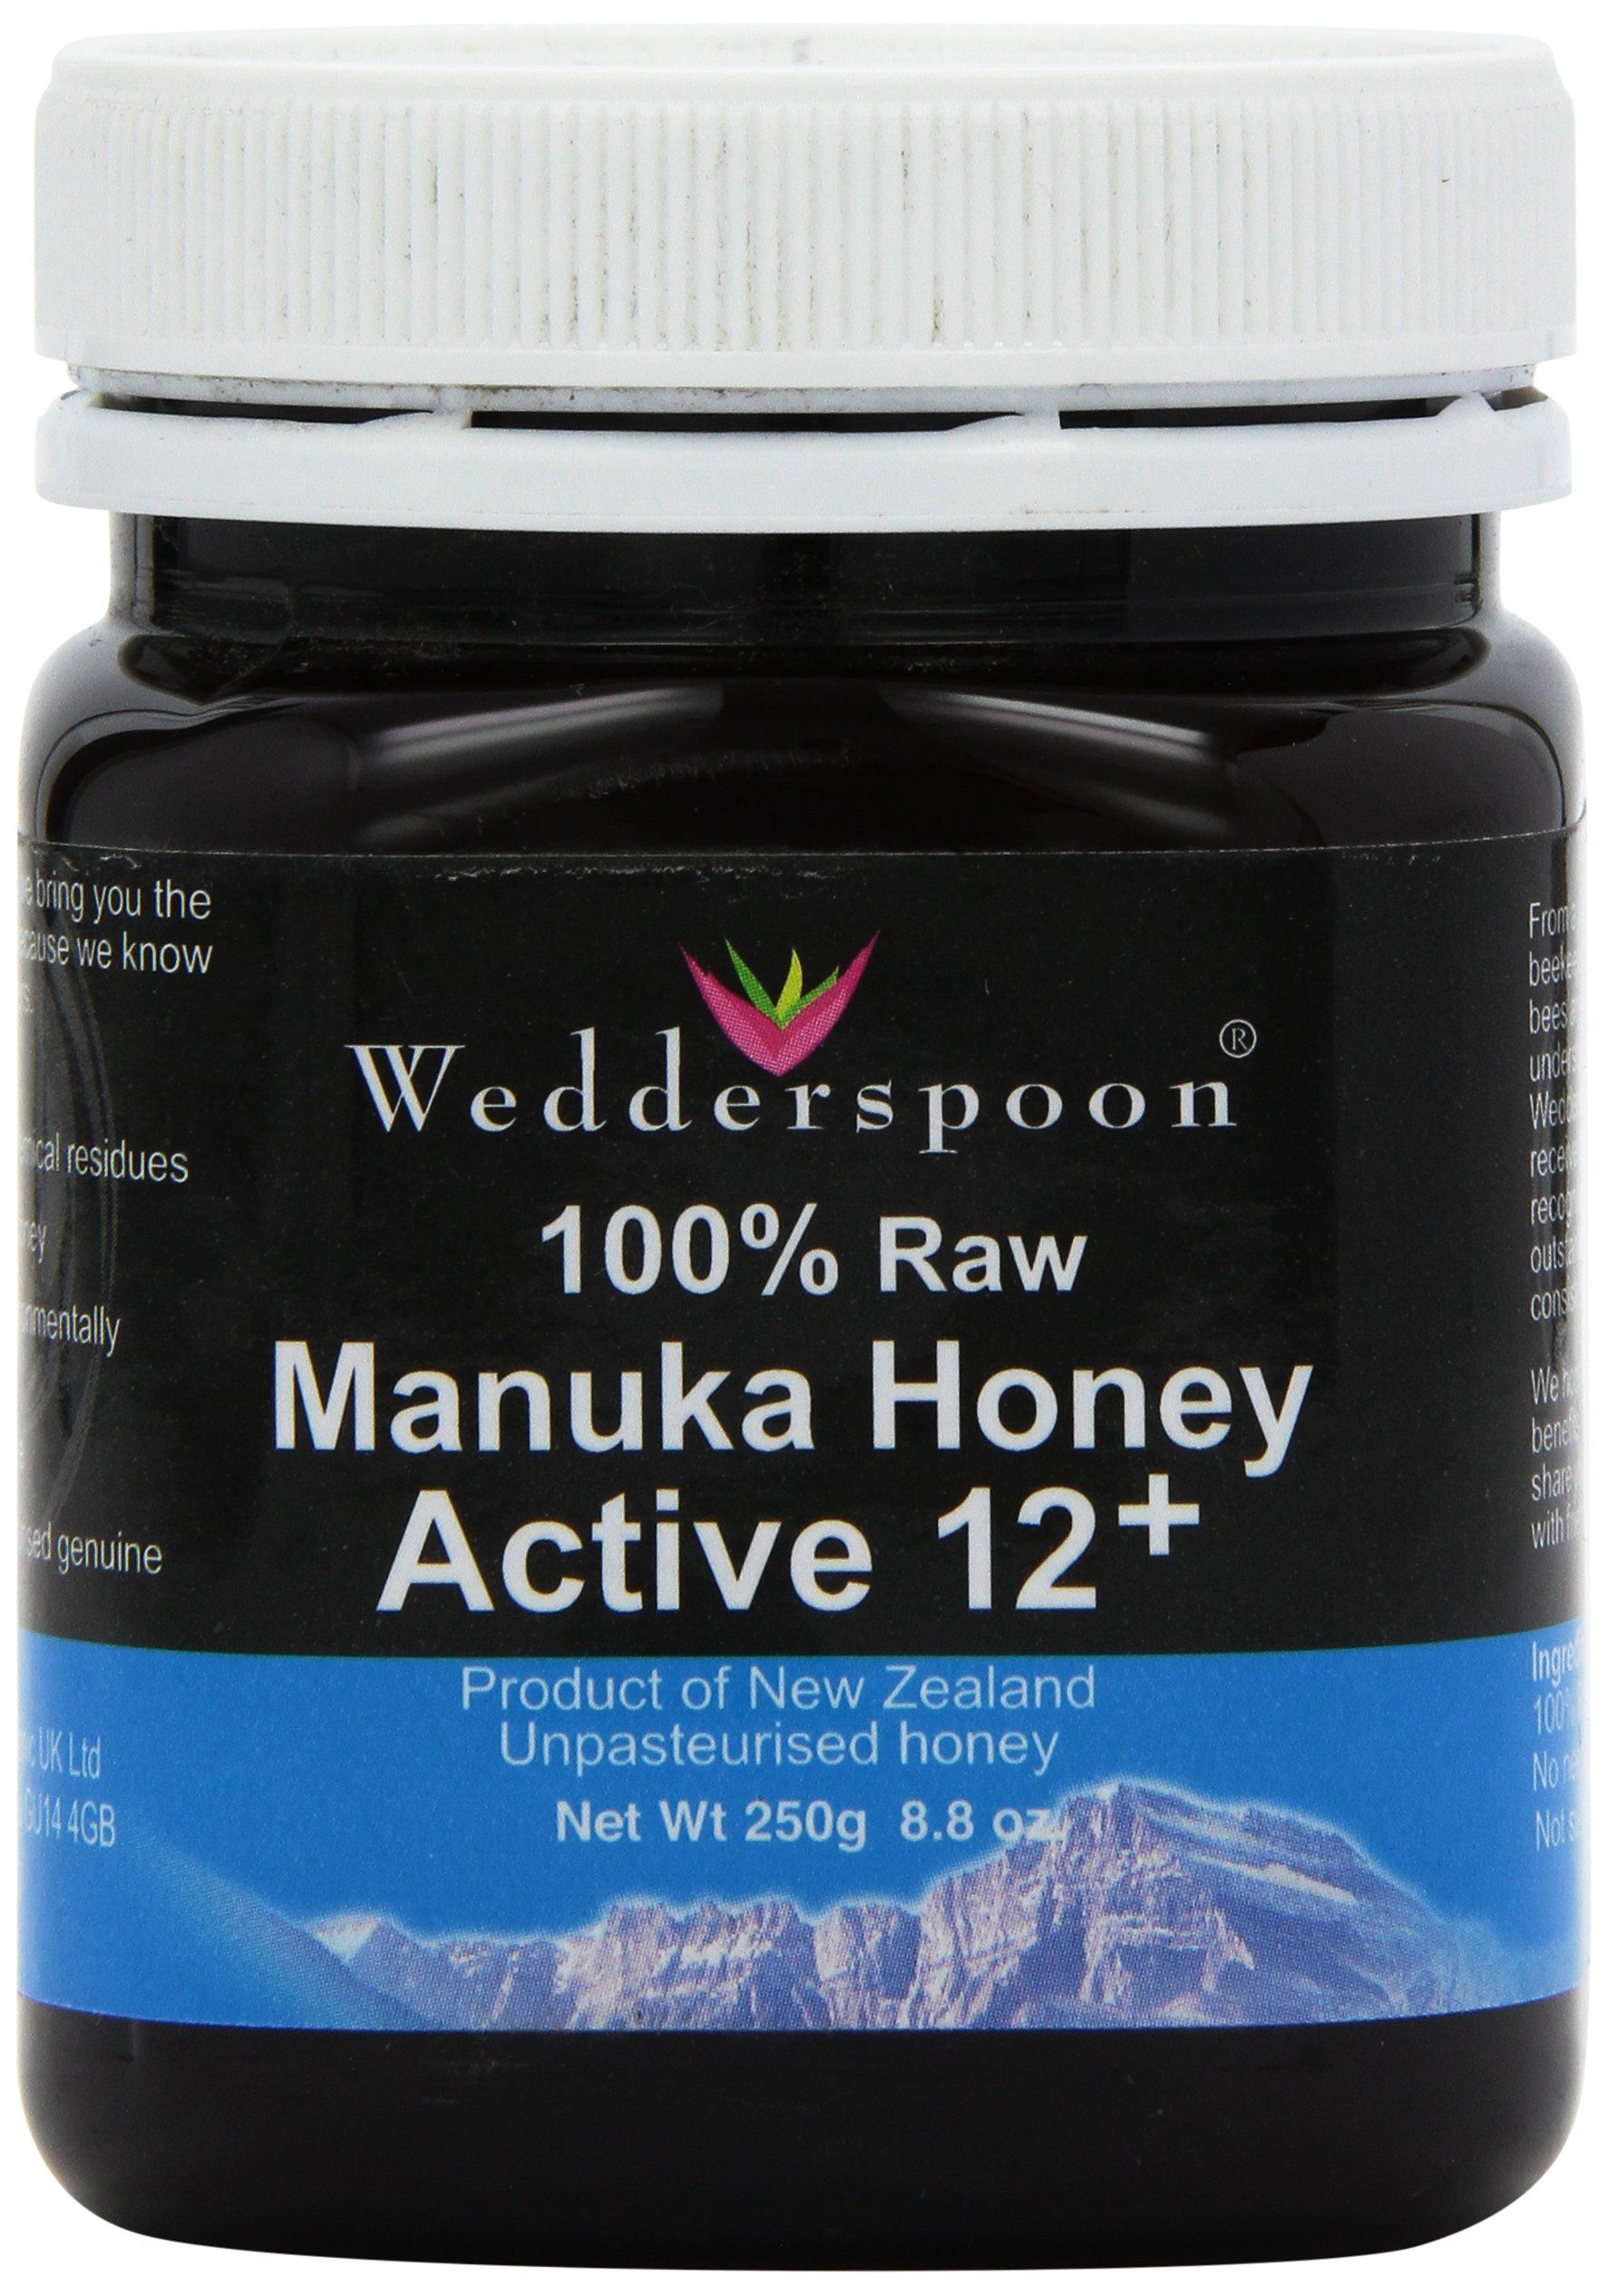 Wedderspoon 100 RAW Manuka Honey Active 12+ 250g Amazon